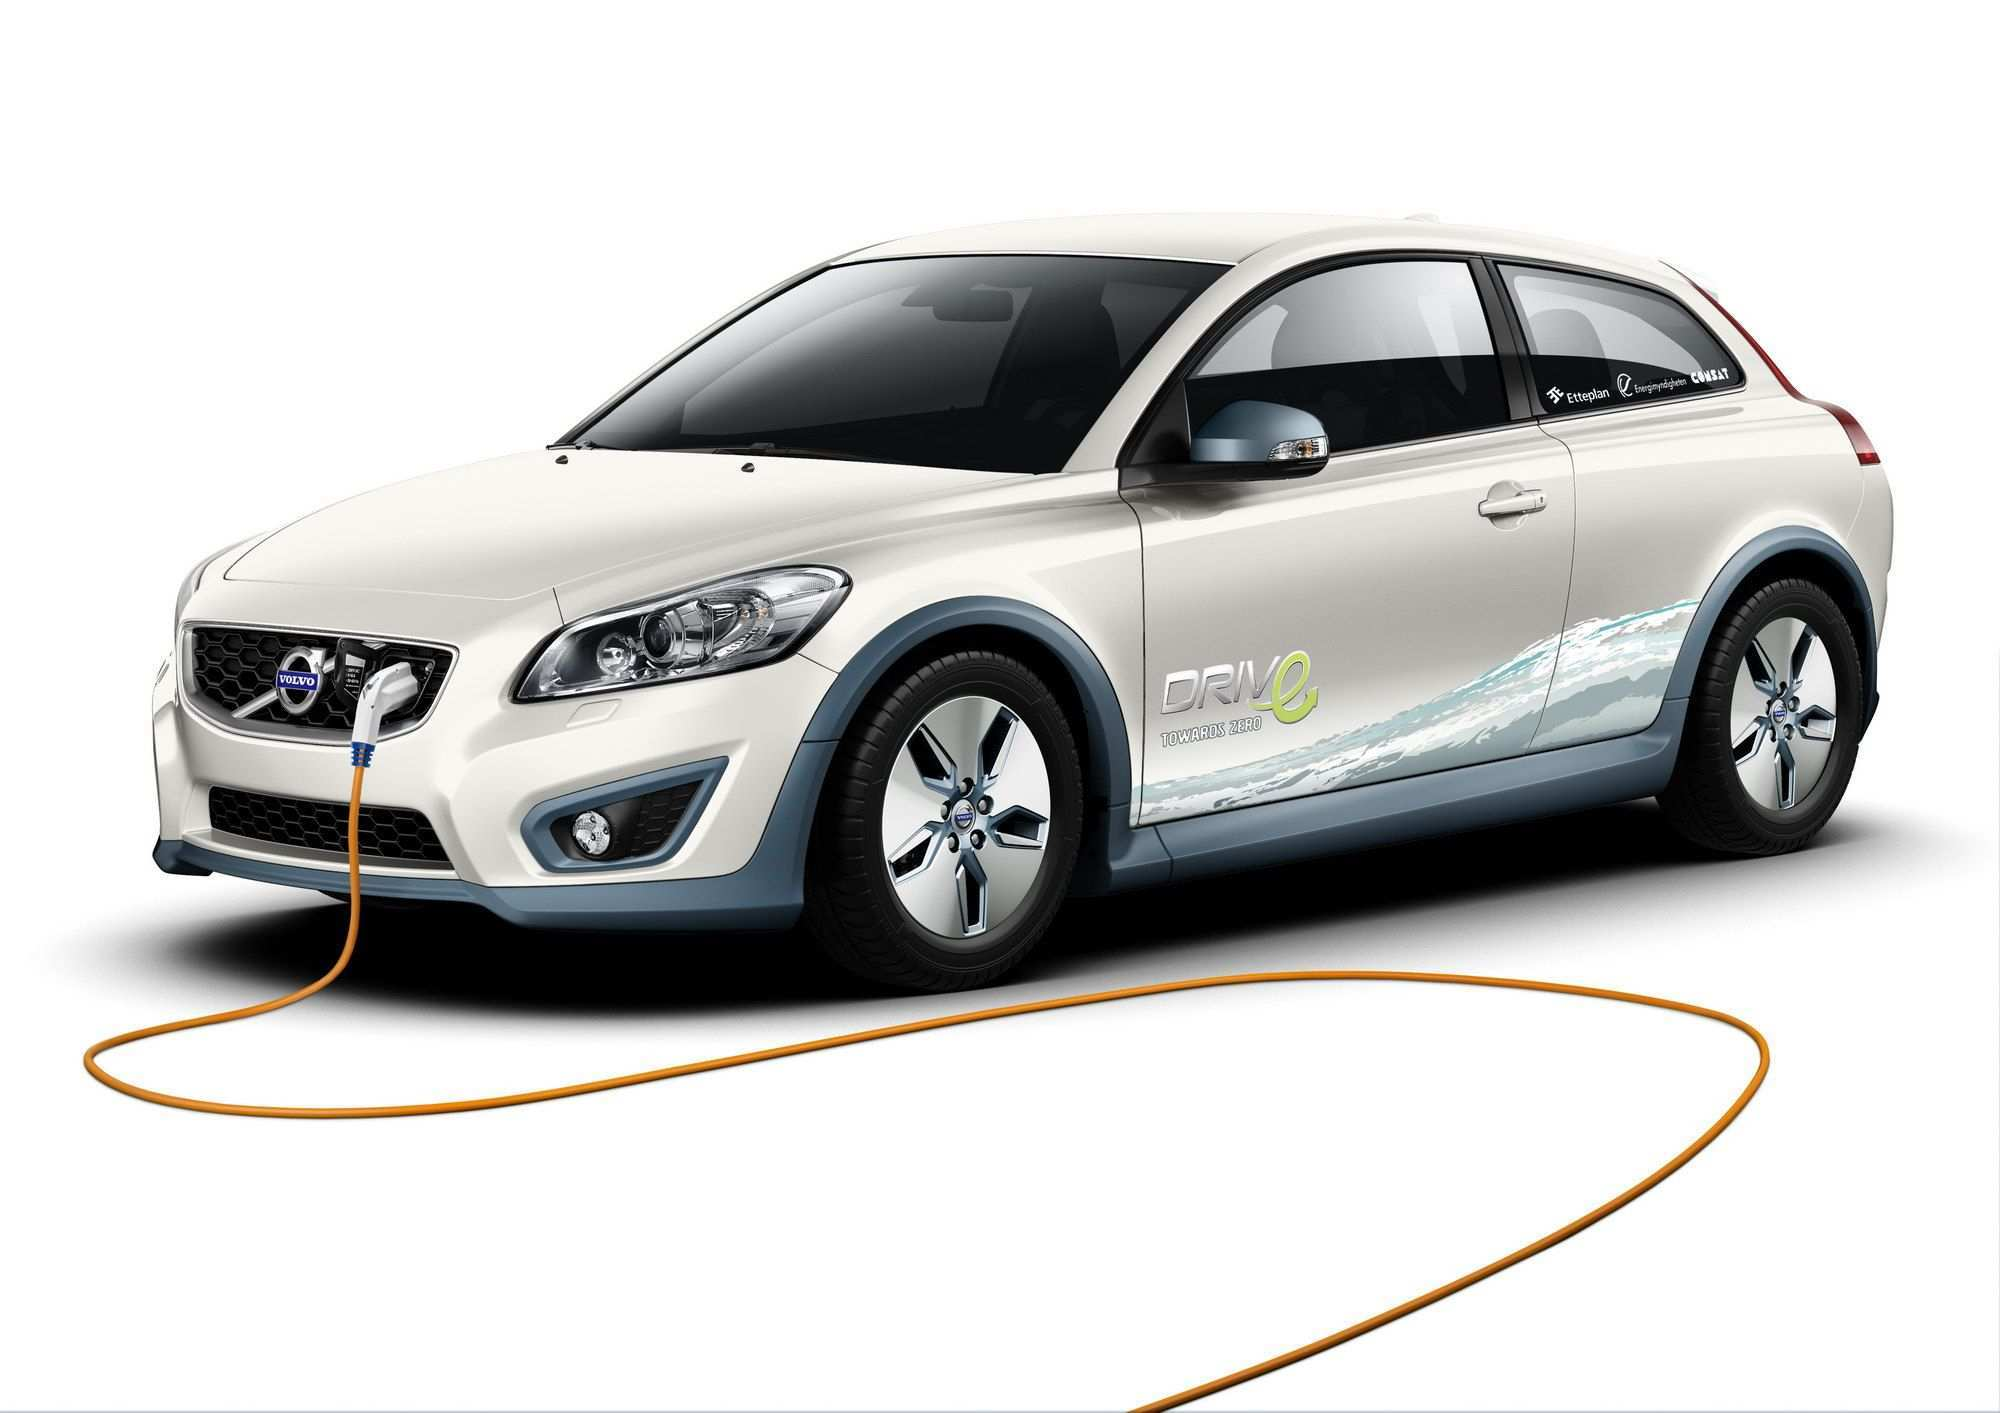 17 All New Volvo C30 2020 Pricing by Volvo C30 2020